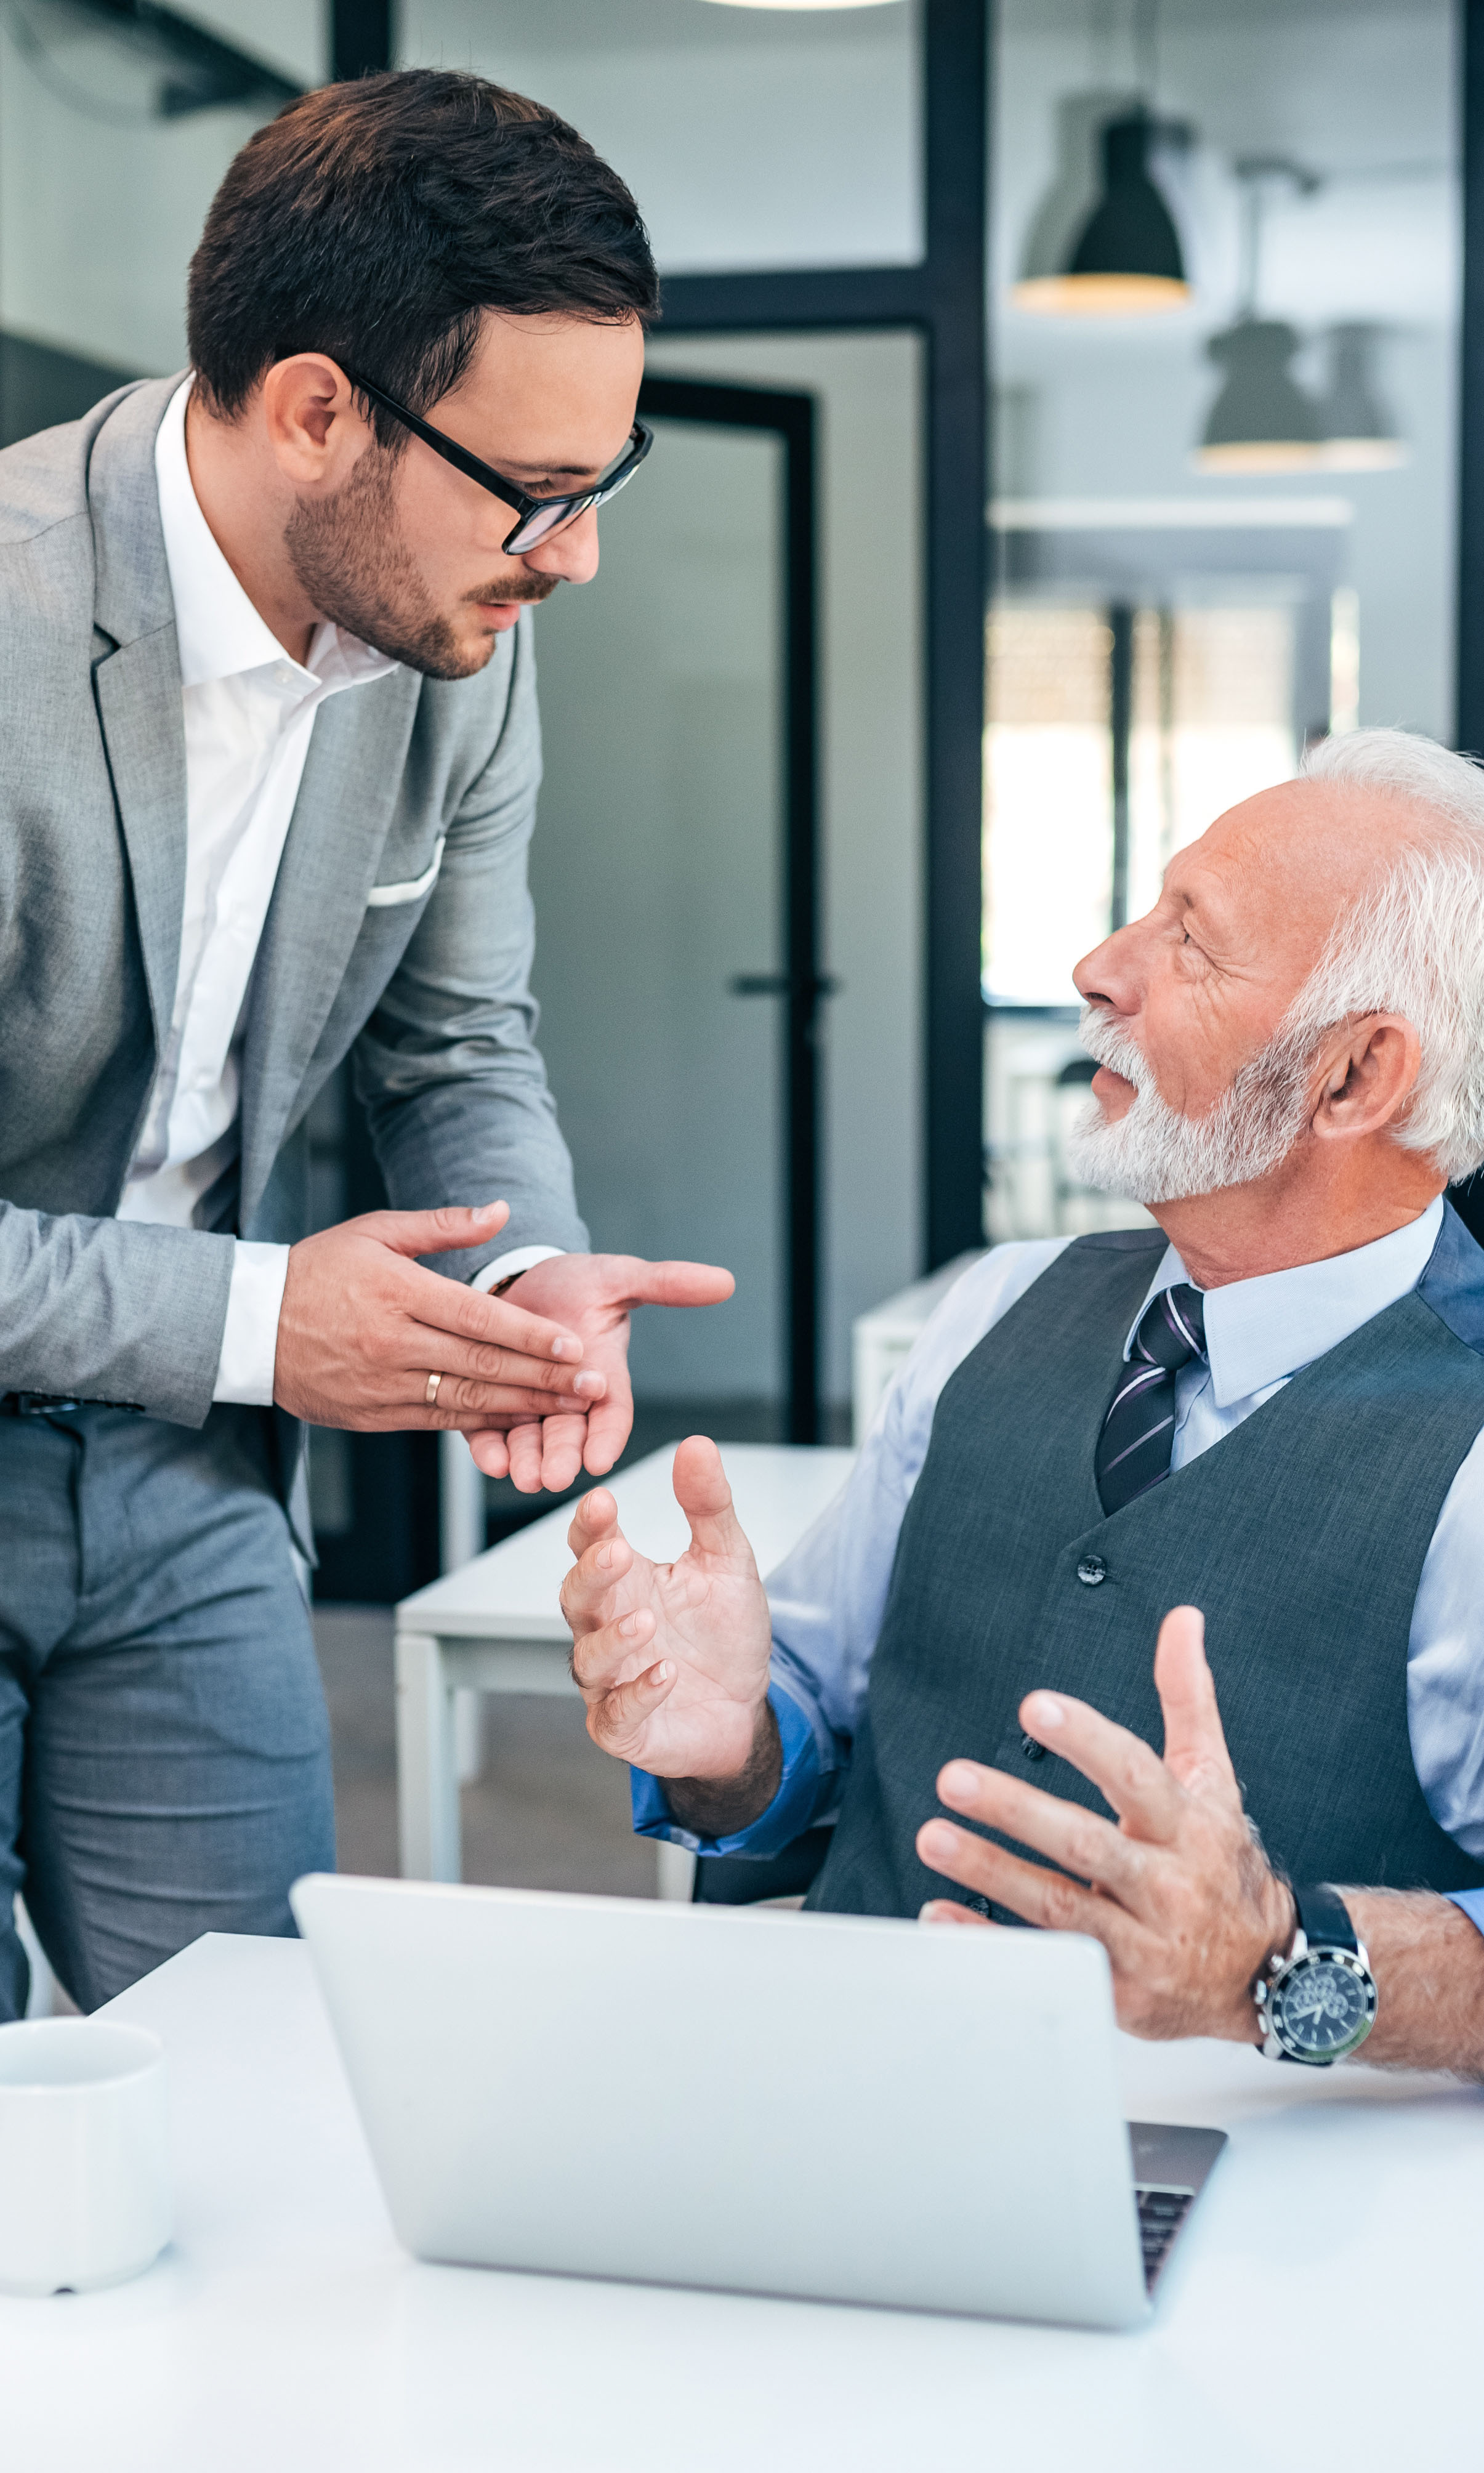 Mind the Gap: Reconciling Boomers, Gen X, Millennials, and Gen Z in the Workplace